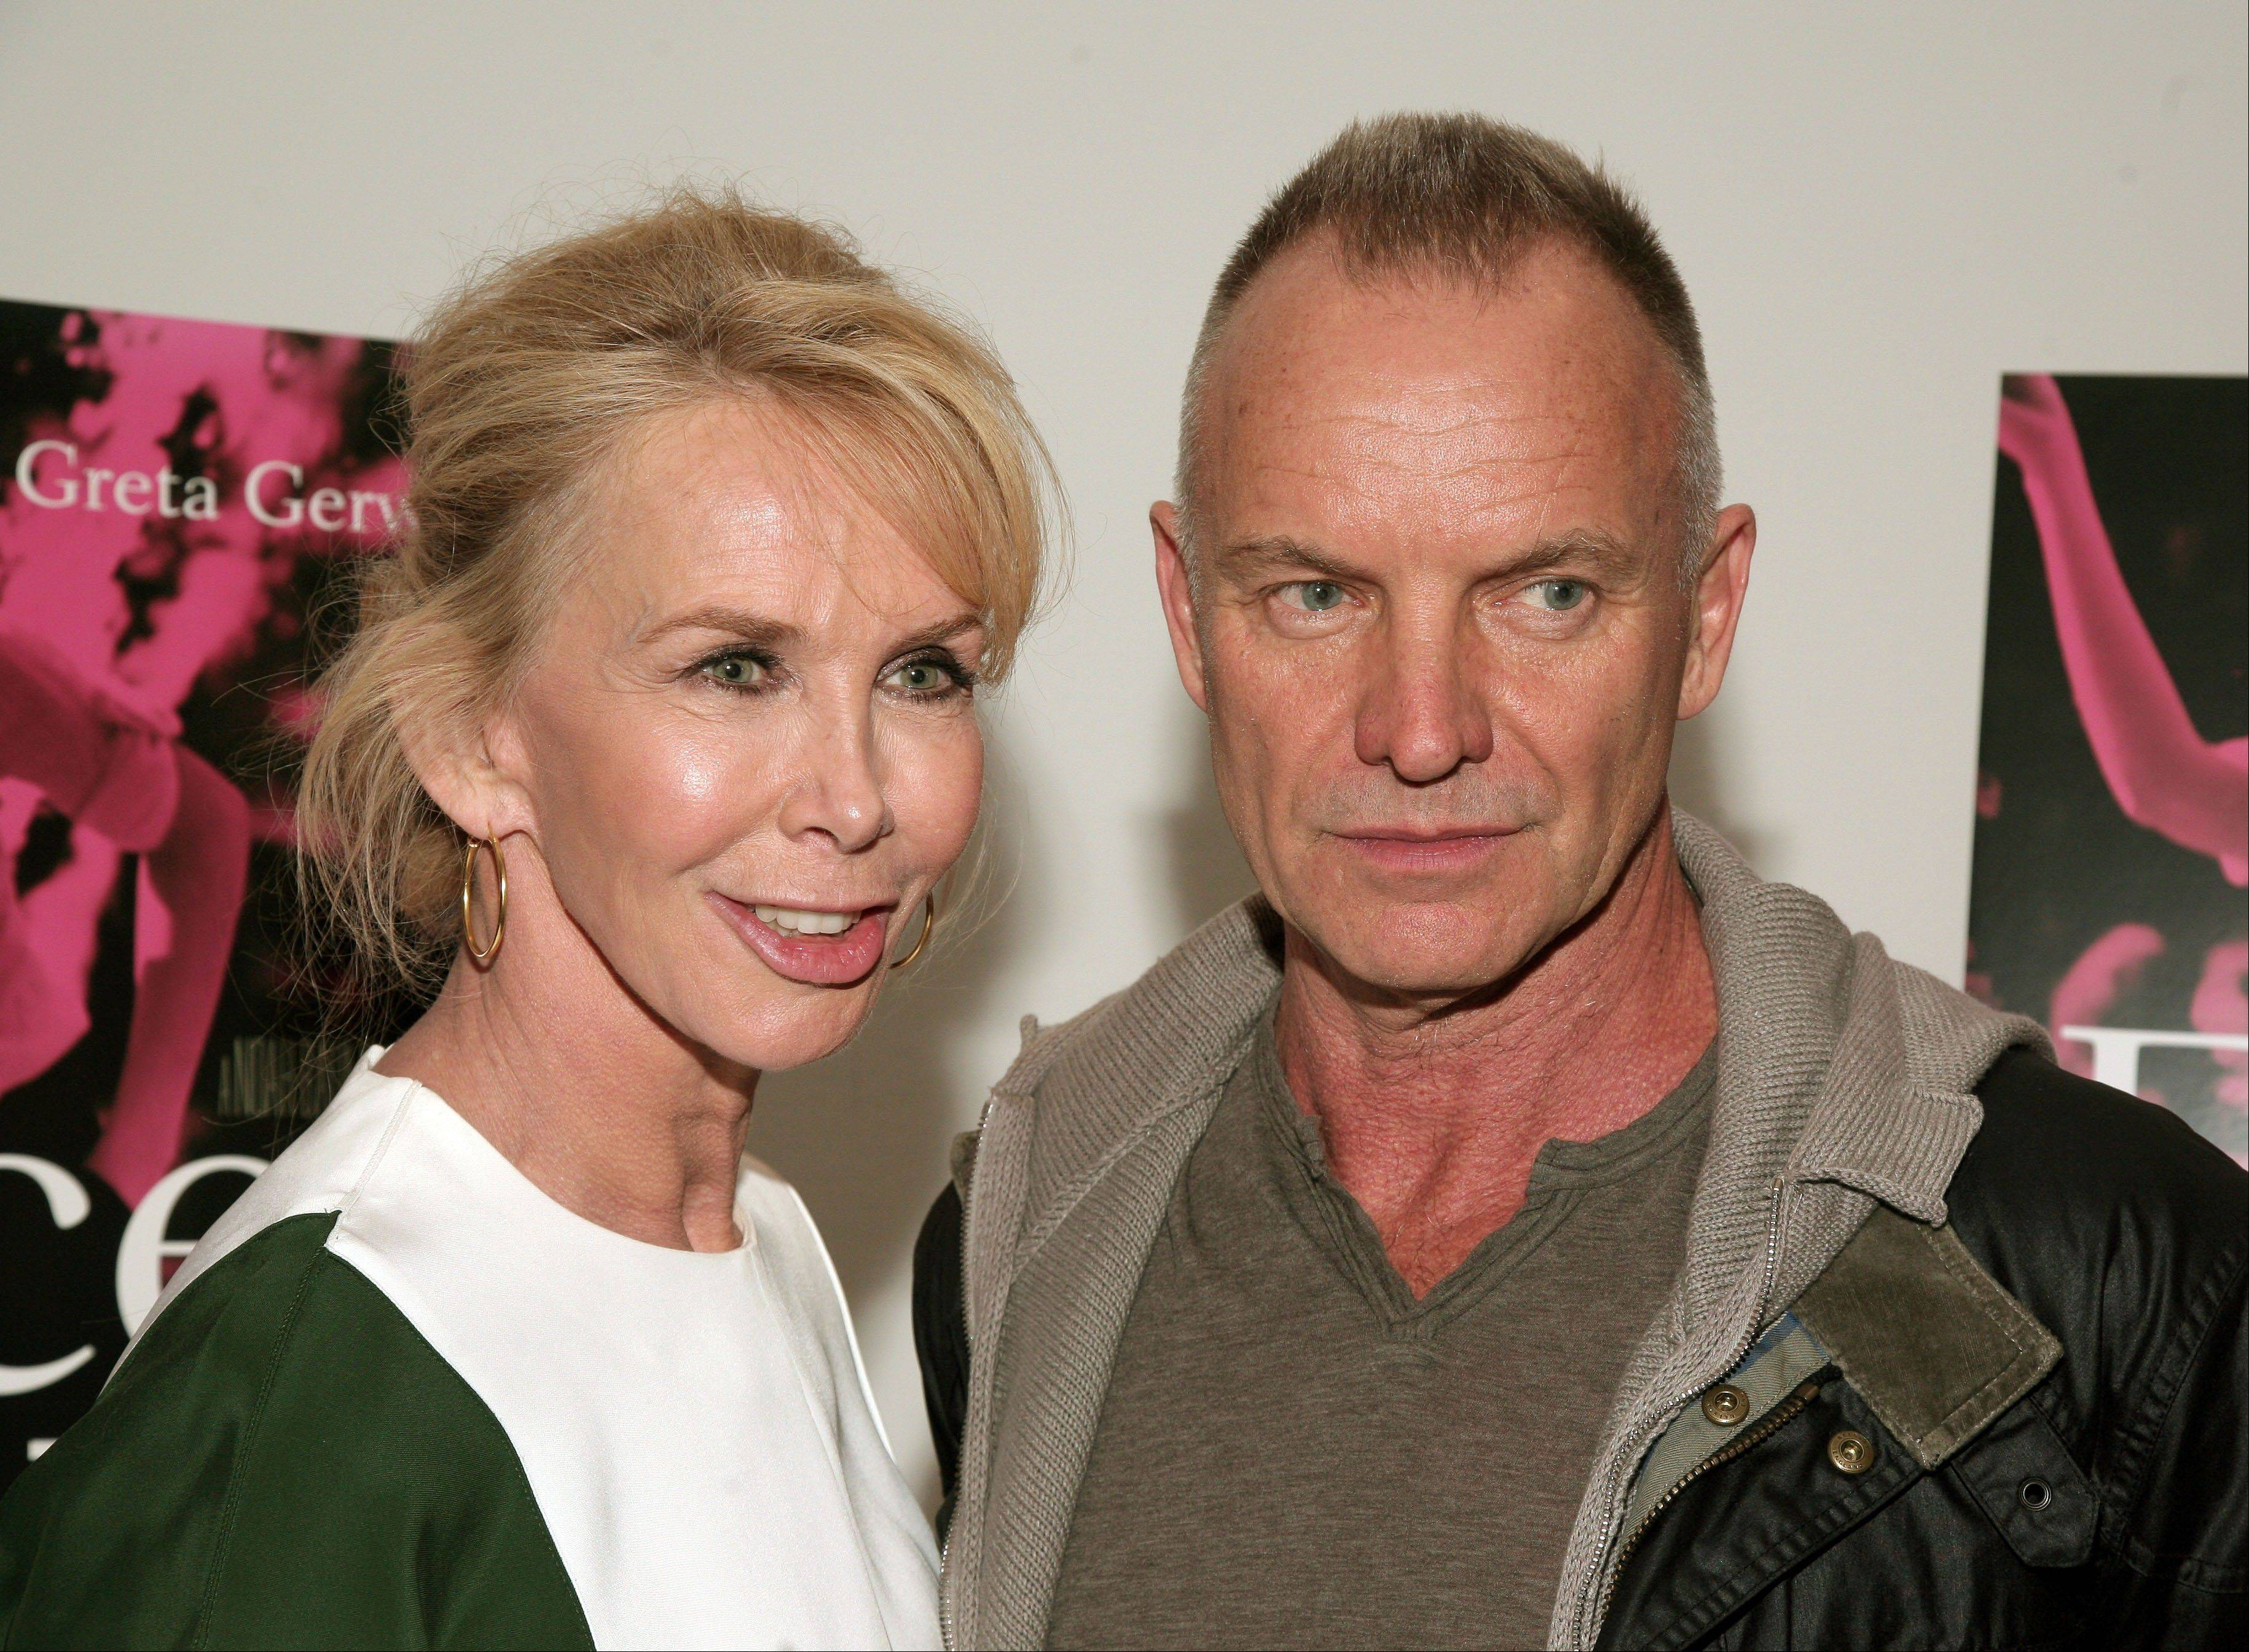 Trudie Styler, wife of Sting and a former member of the Royal Shakespeare Company, has only lately returned to the stage after many years as a film producer, businesswoman, philanthropist, environmentalist and yoga instructor.